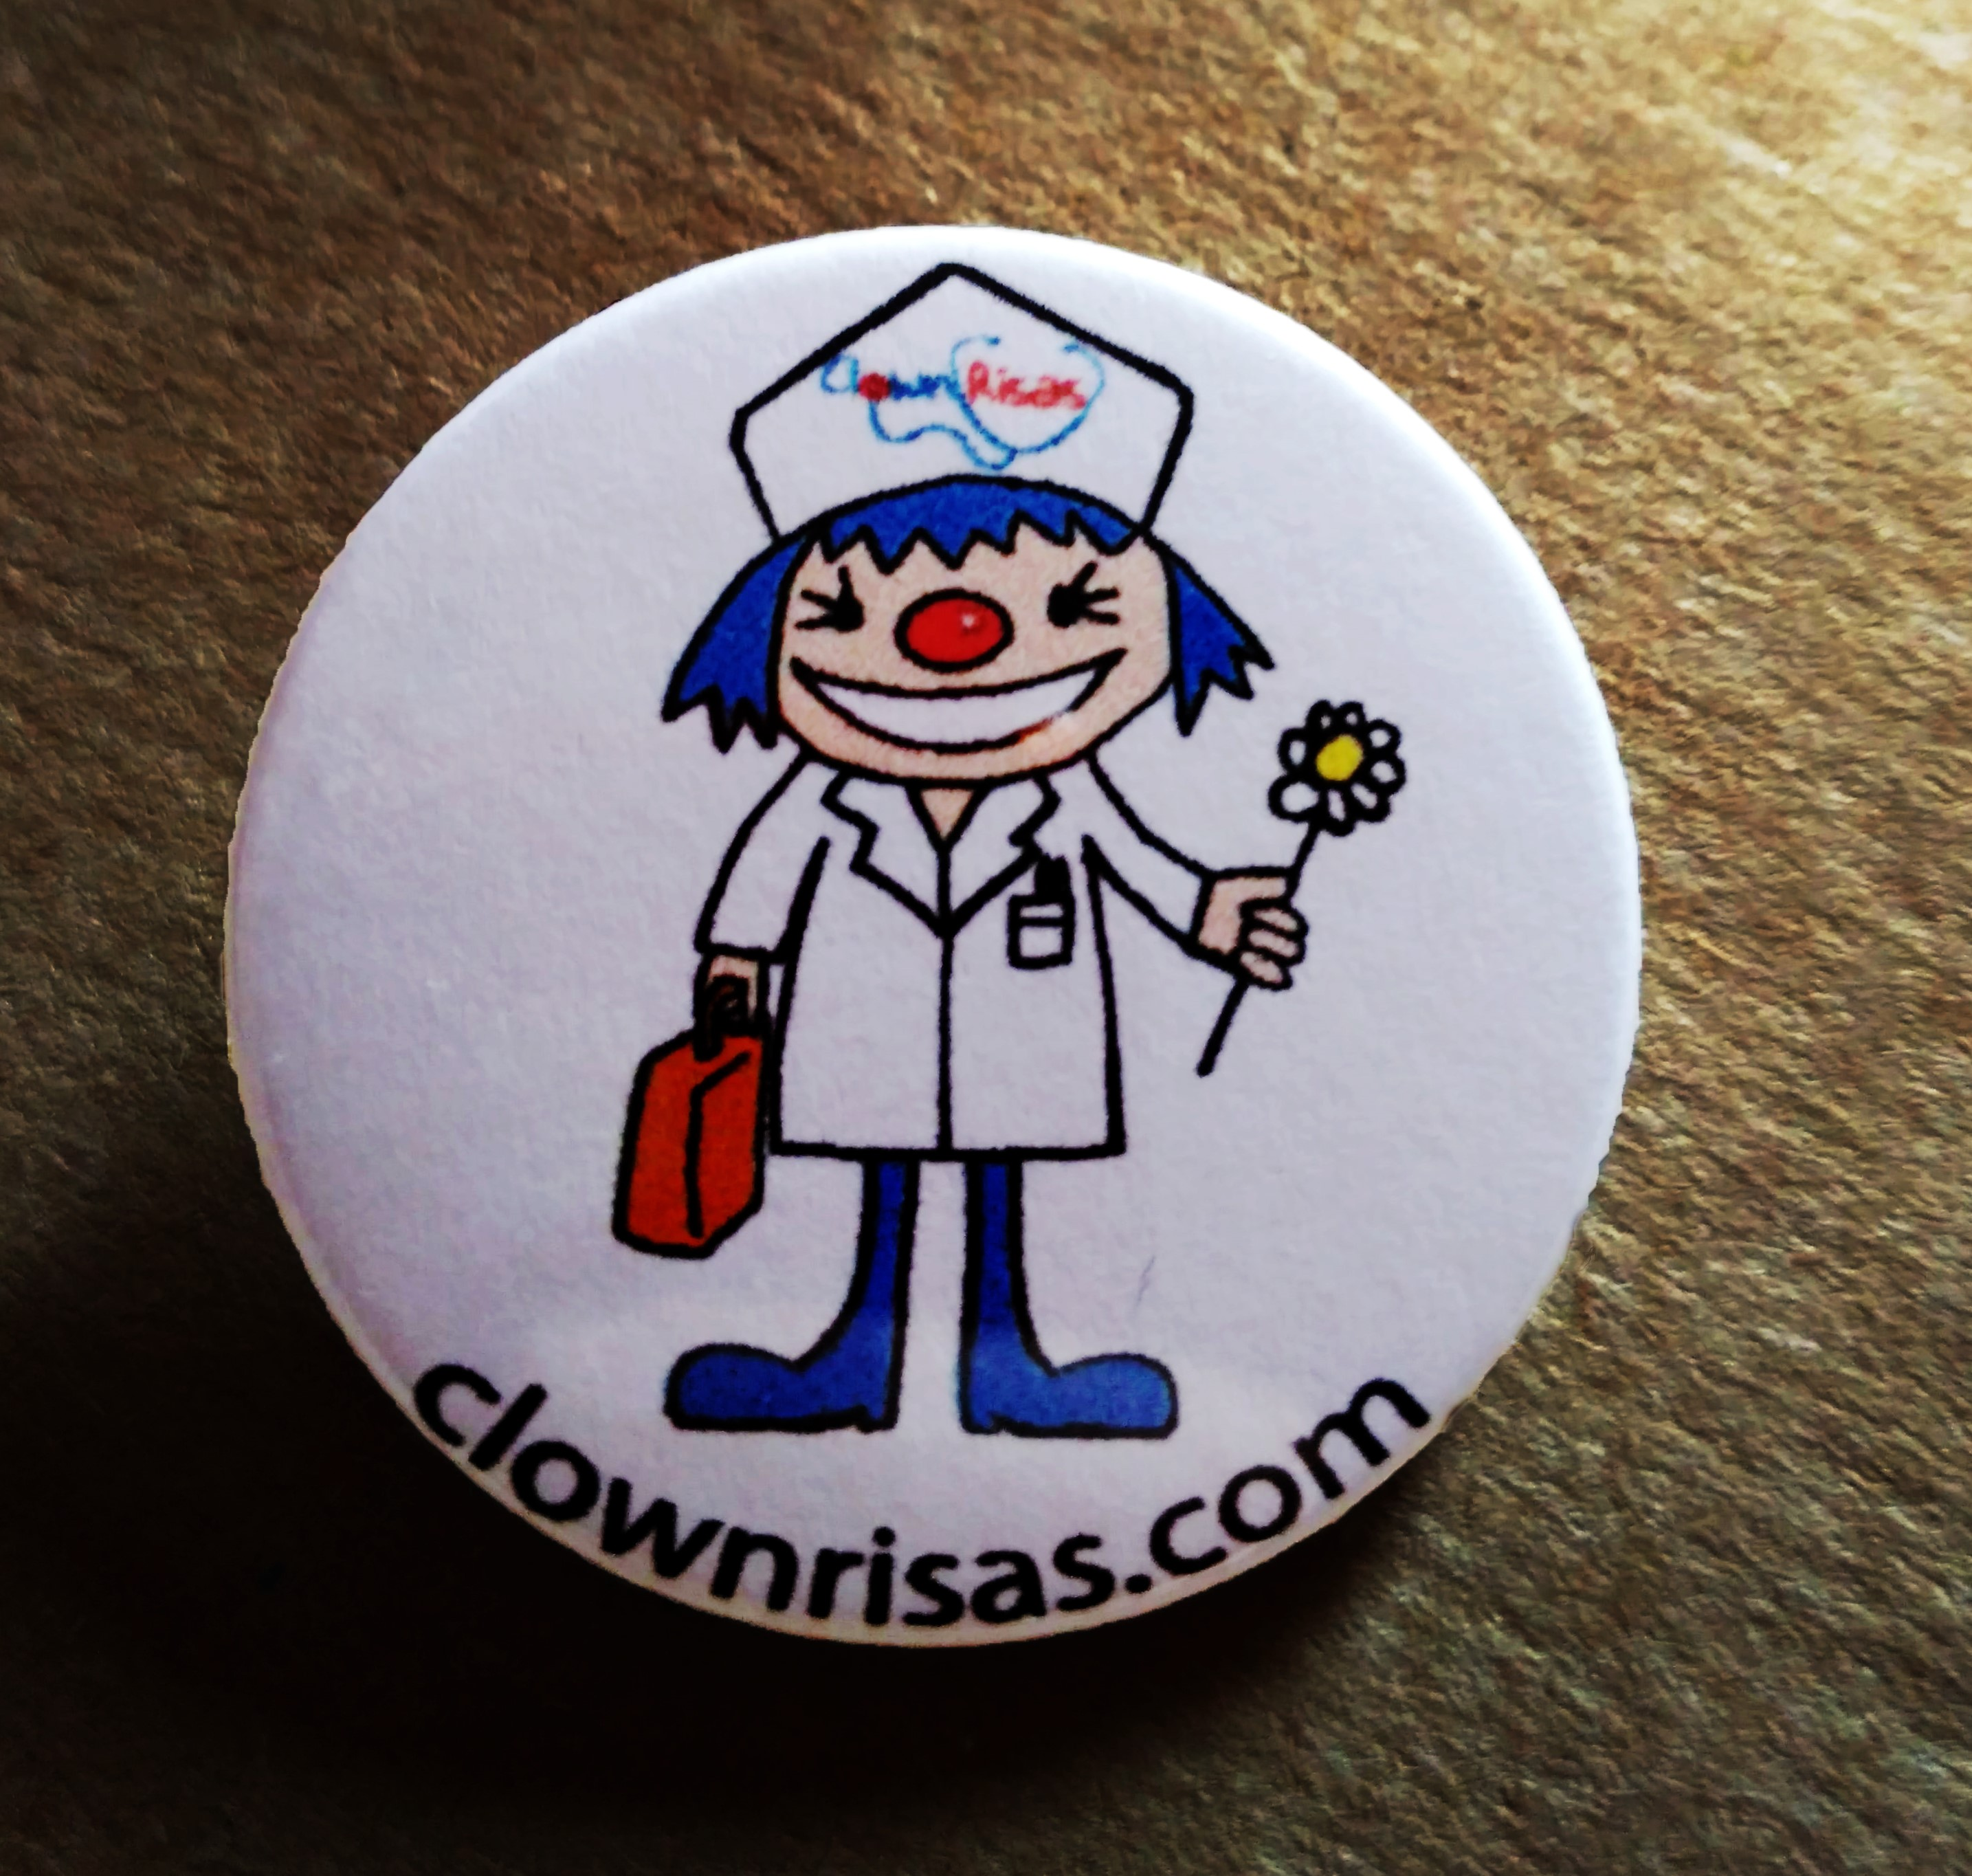 chapa solidaria clownrisas payasa hospital